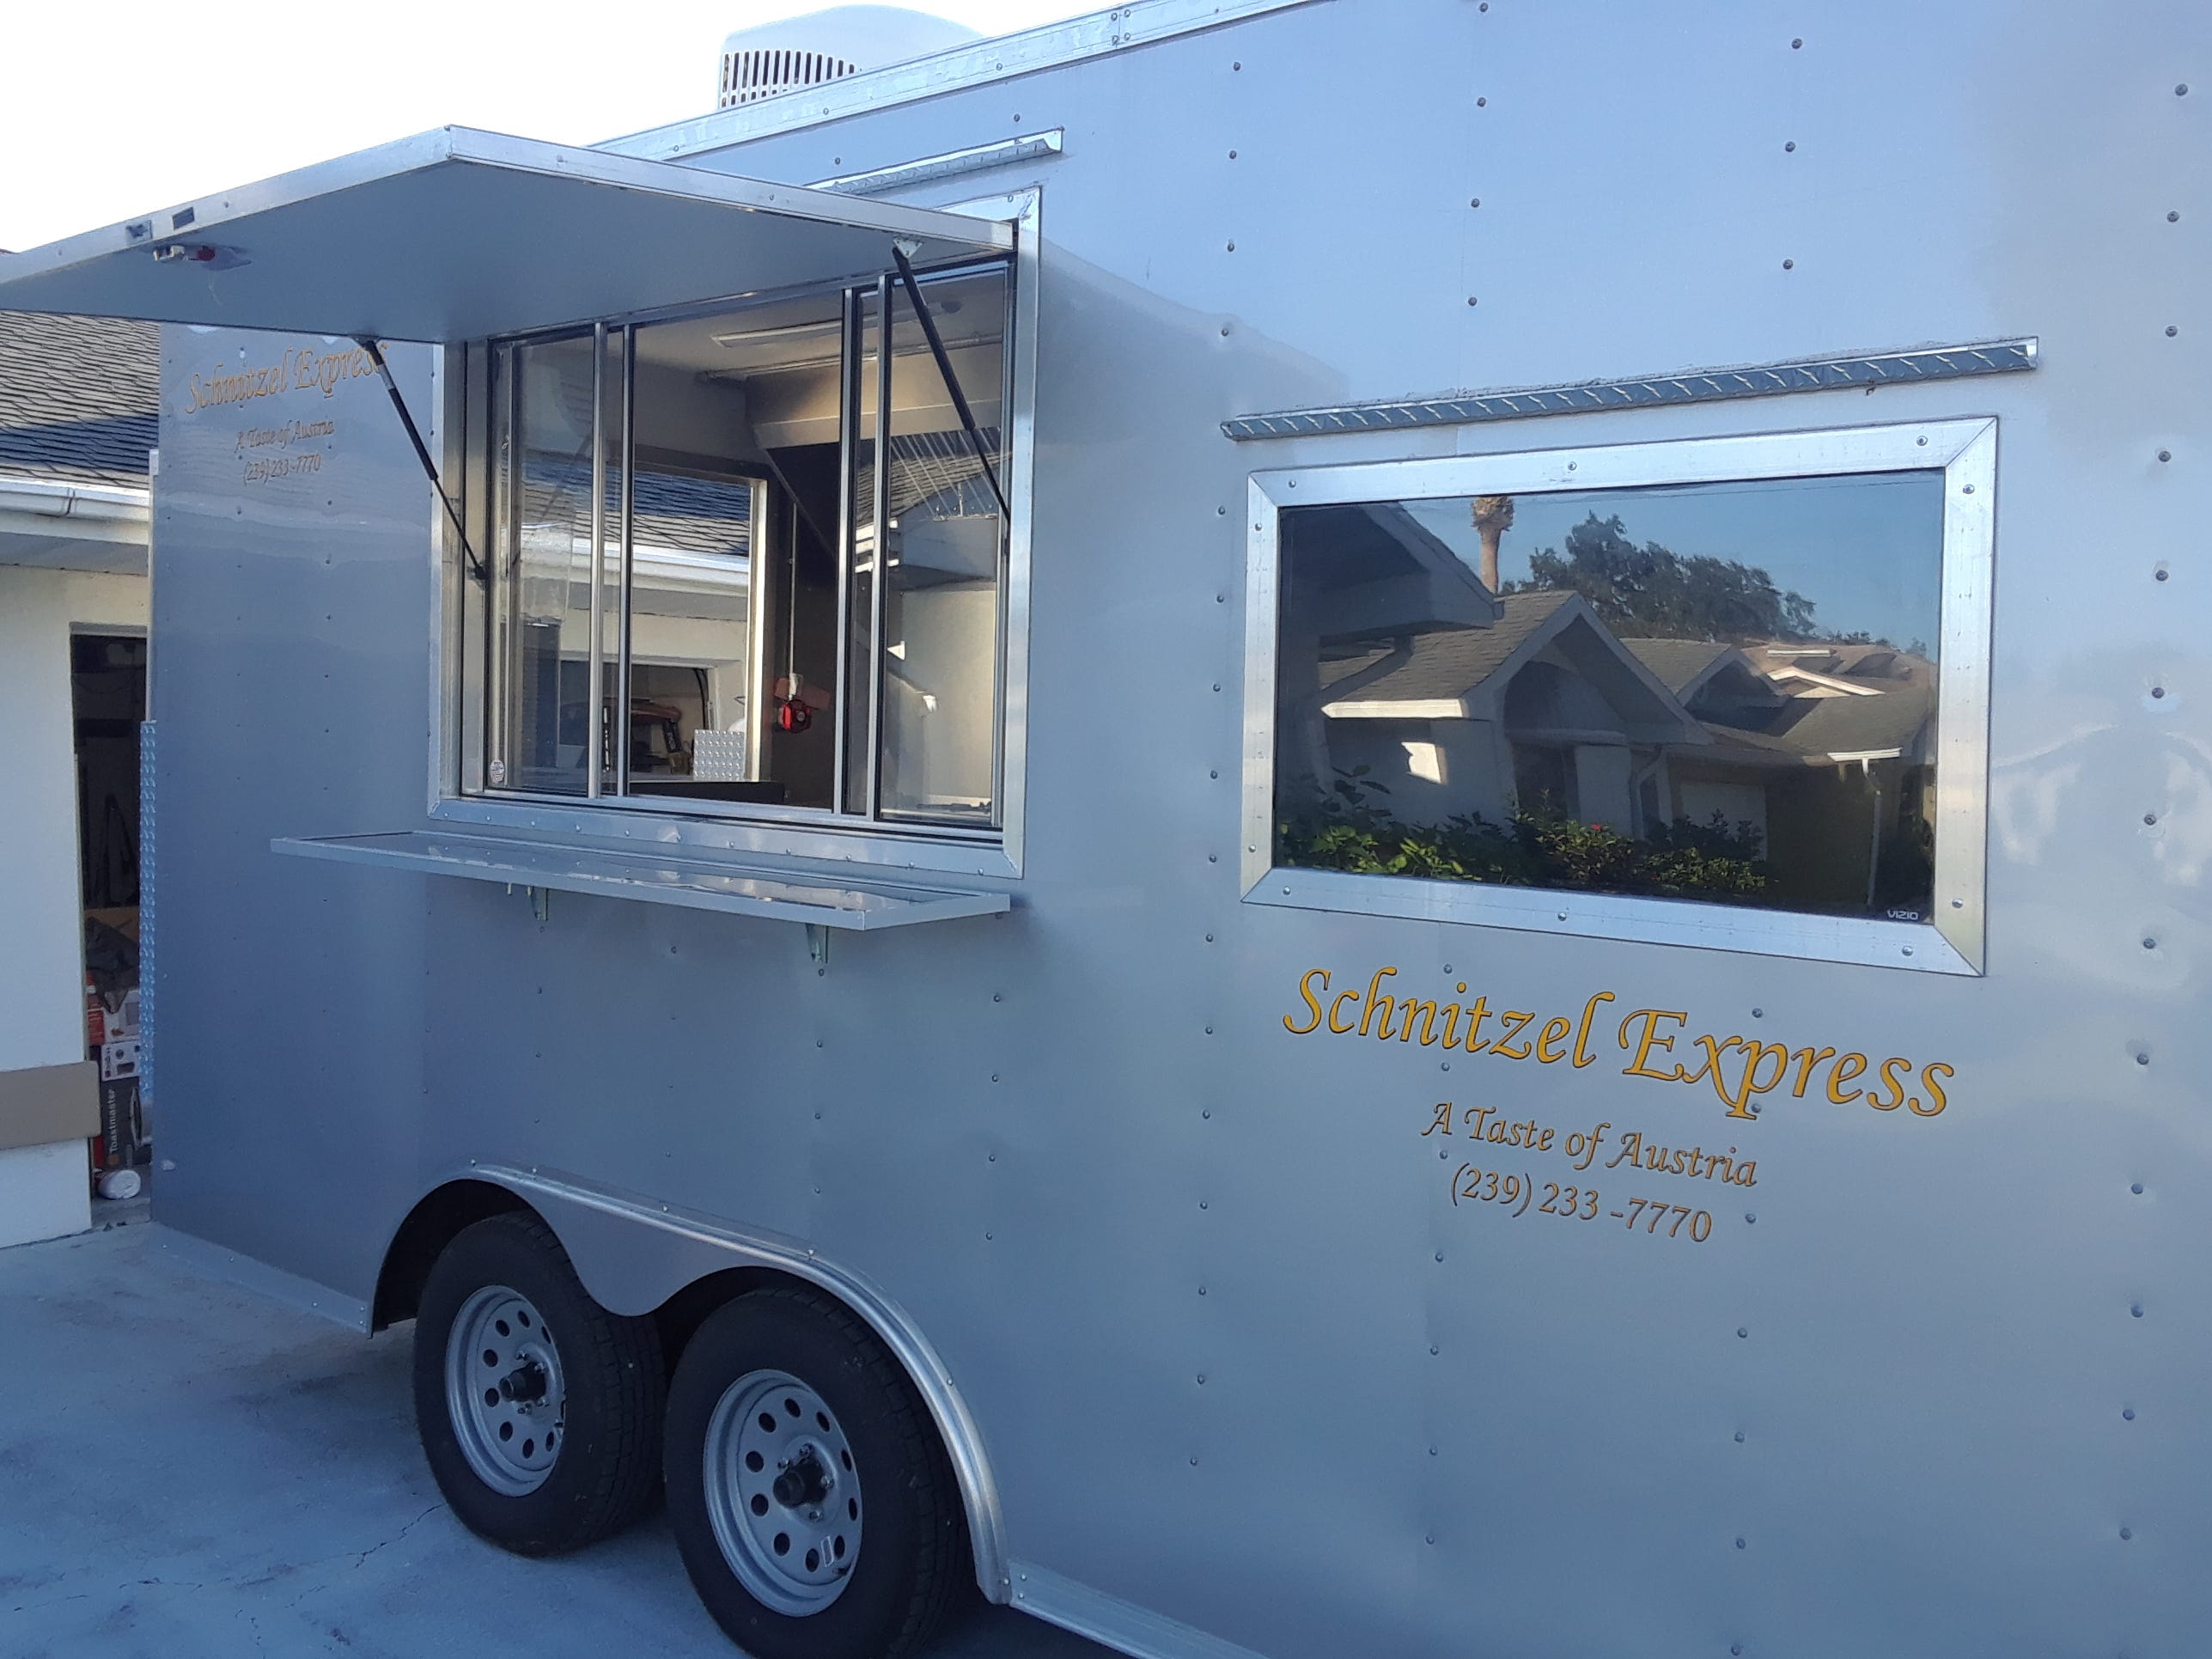 """Helmut Heiss sold Austrian-German Restaurant to open the Schnitzel Express food truck. Heiss called the move a """"survival strategy."""""""